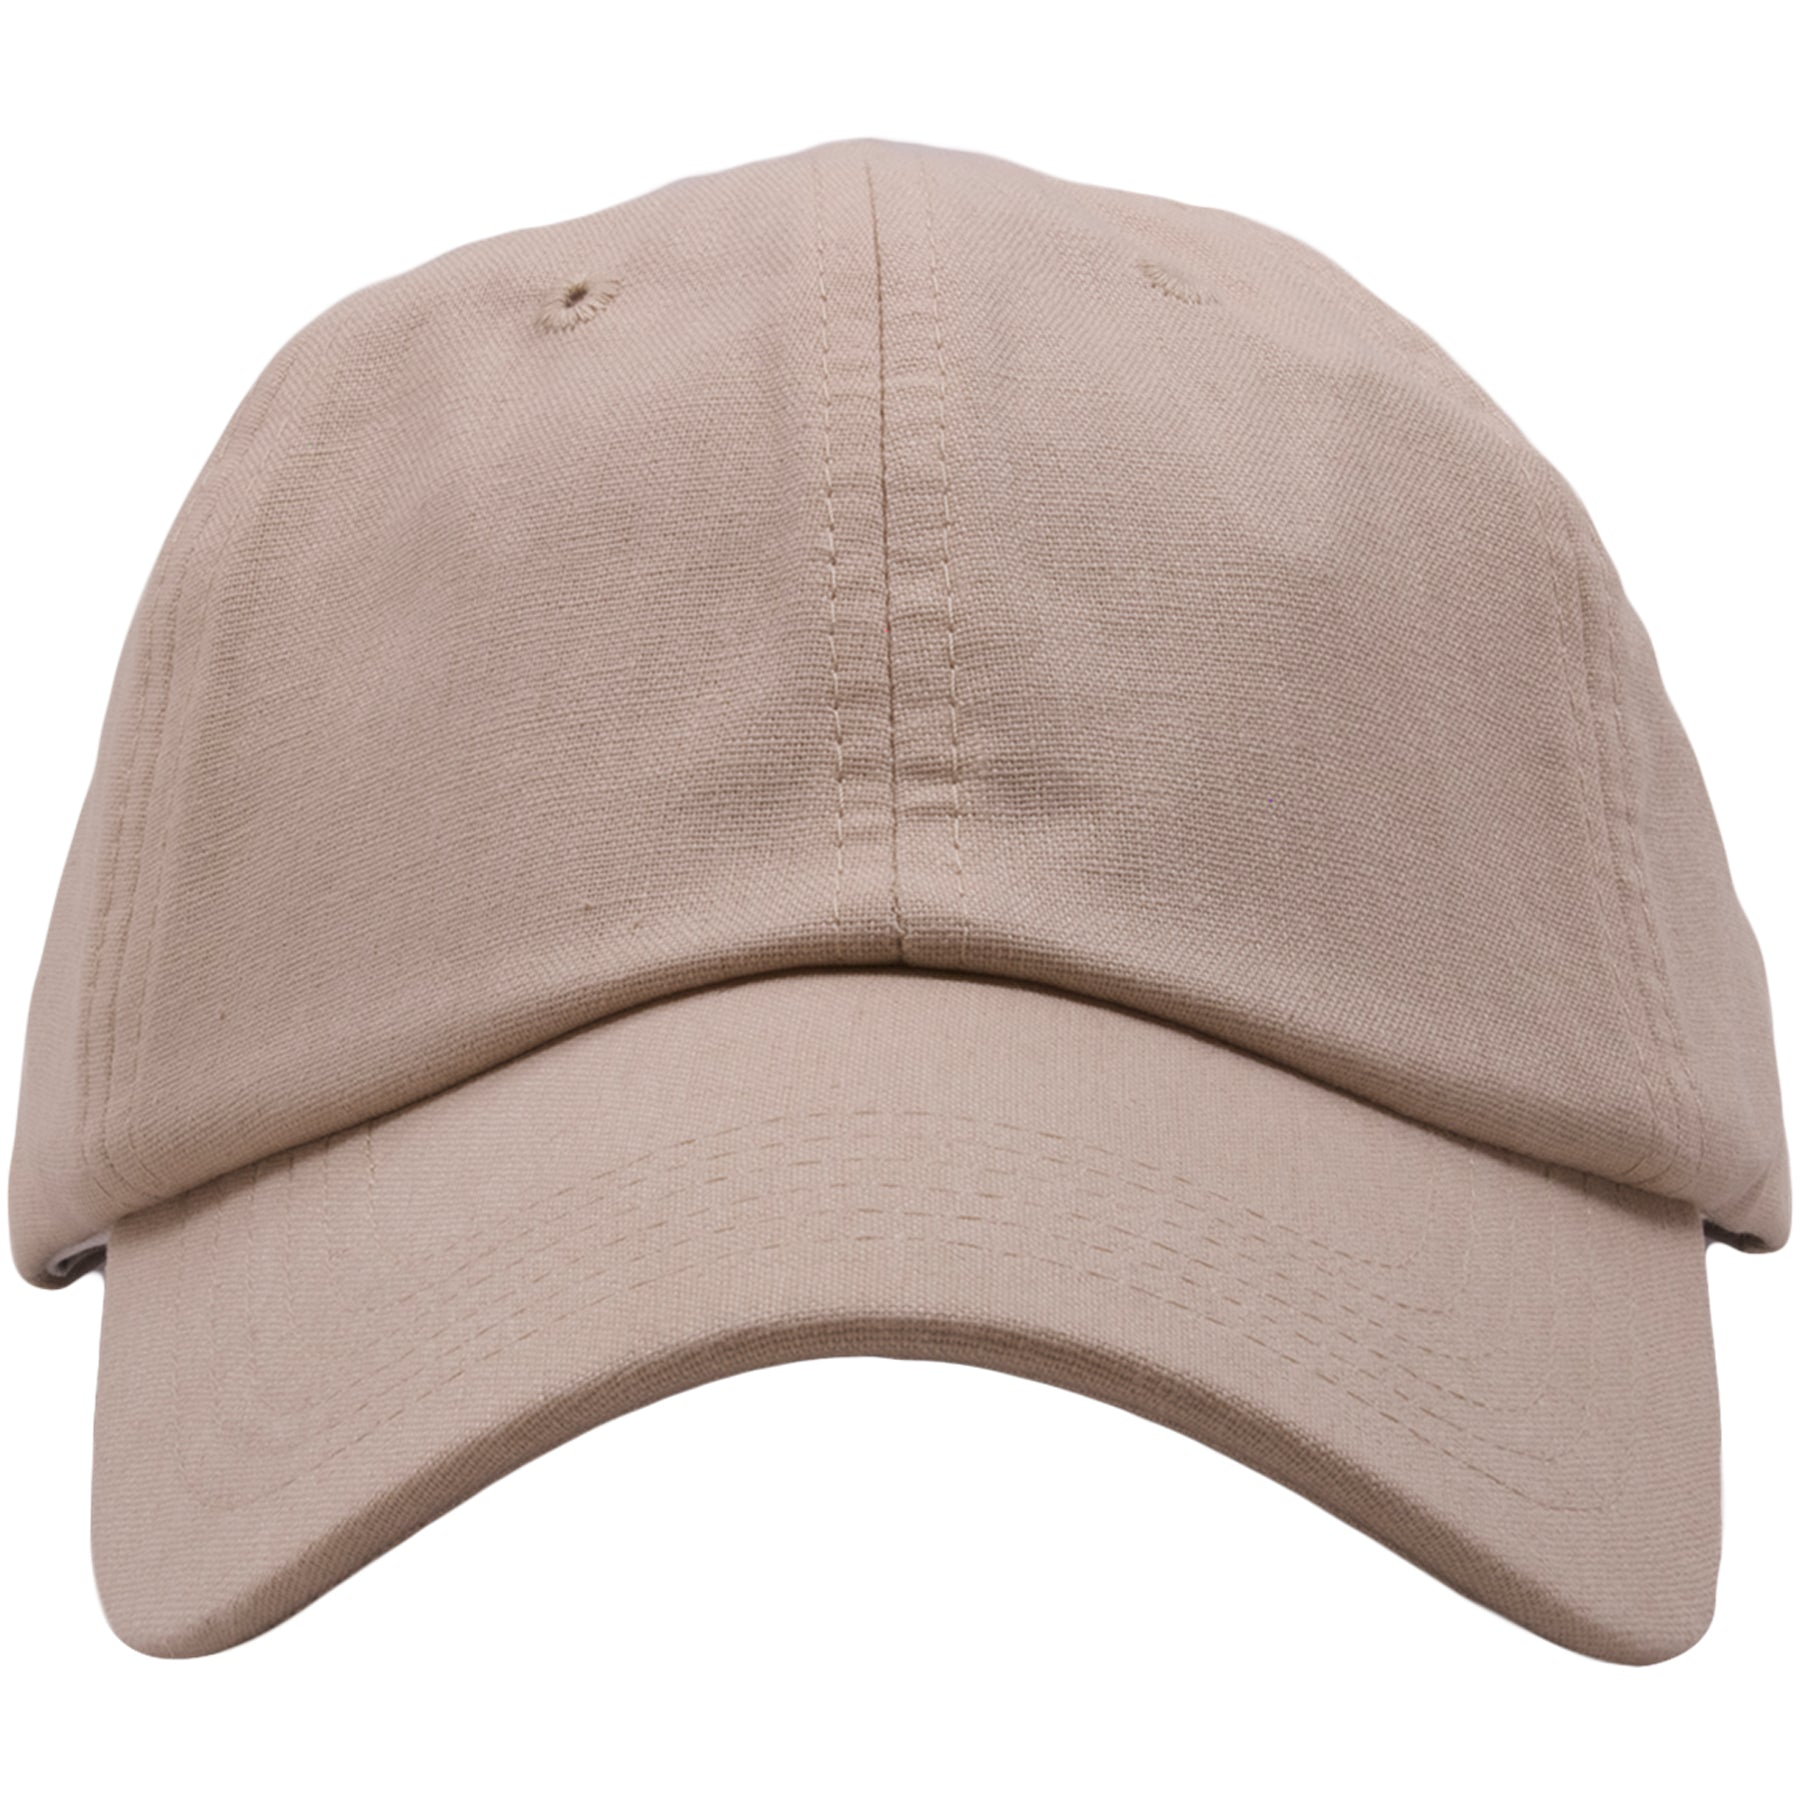 d3fa4274e33 The khaki linen blank adjustable baseball cap is made out of 100% linen and  has